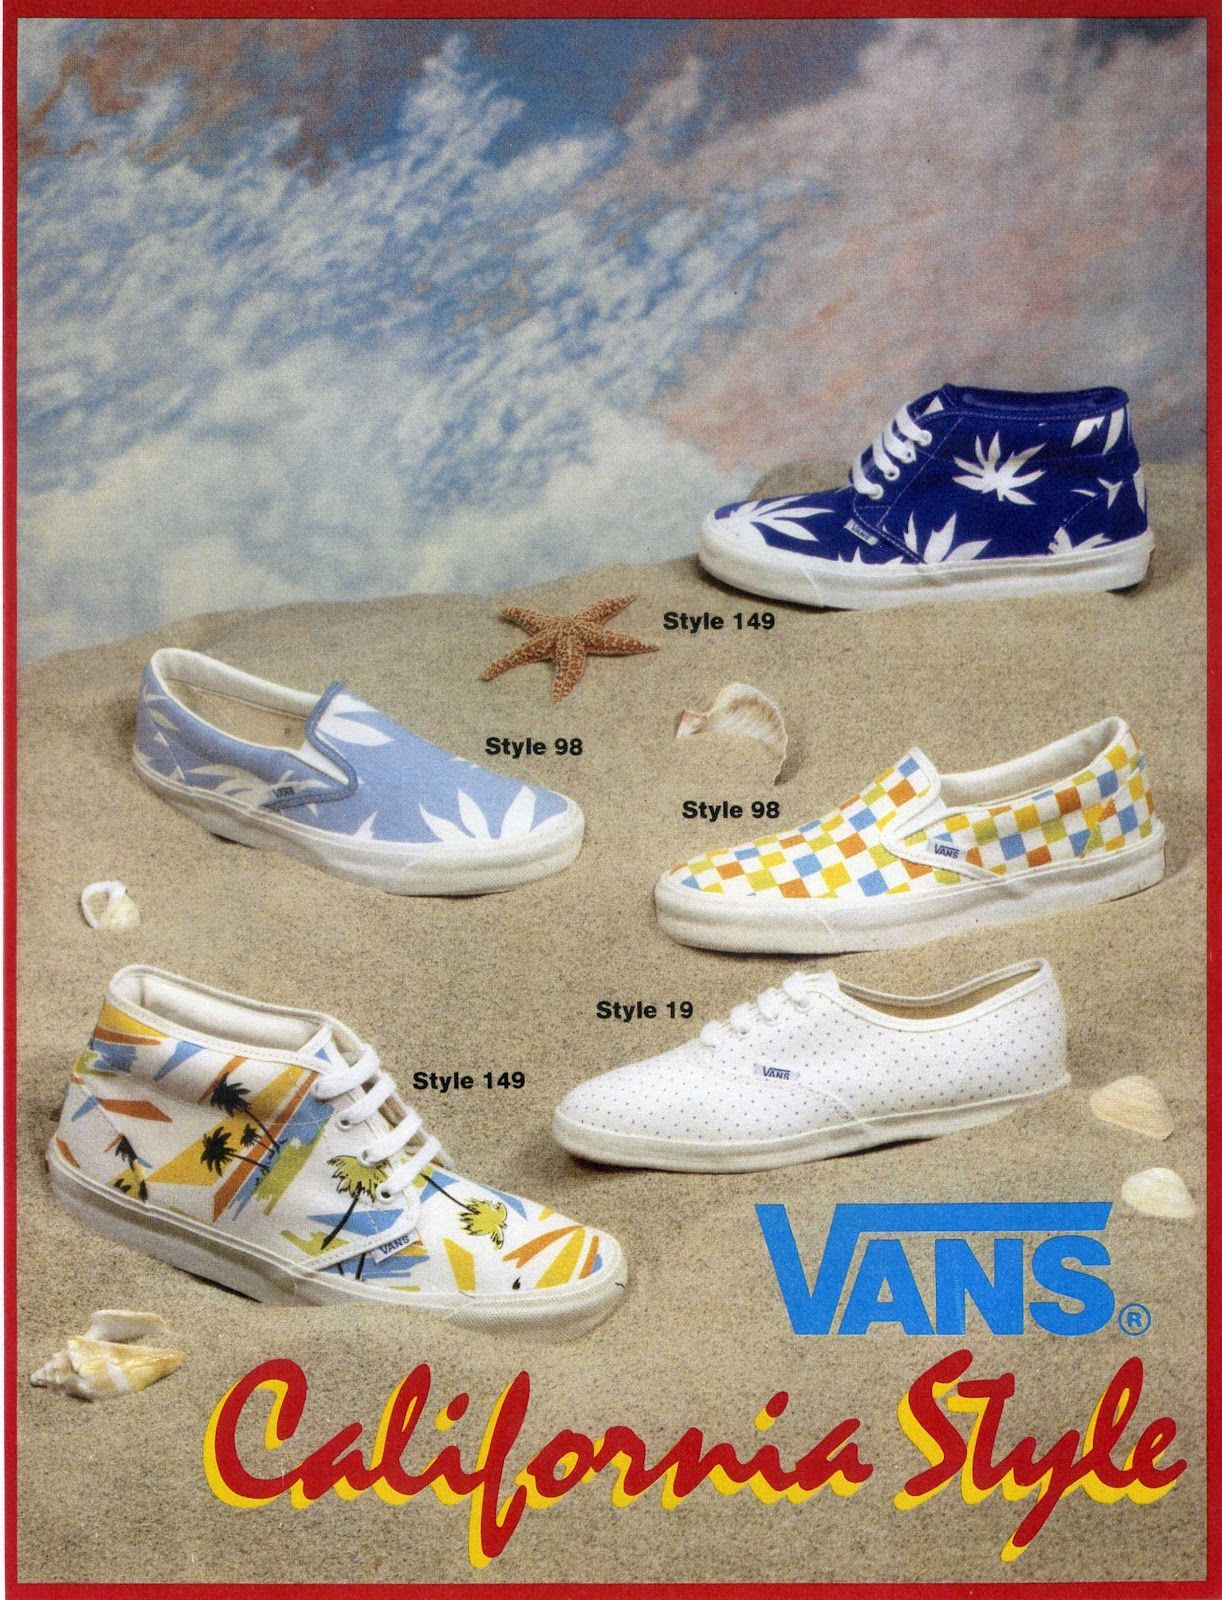 9c812f6787 Vans Vintage Ad Bmx Shoes